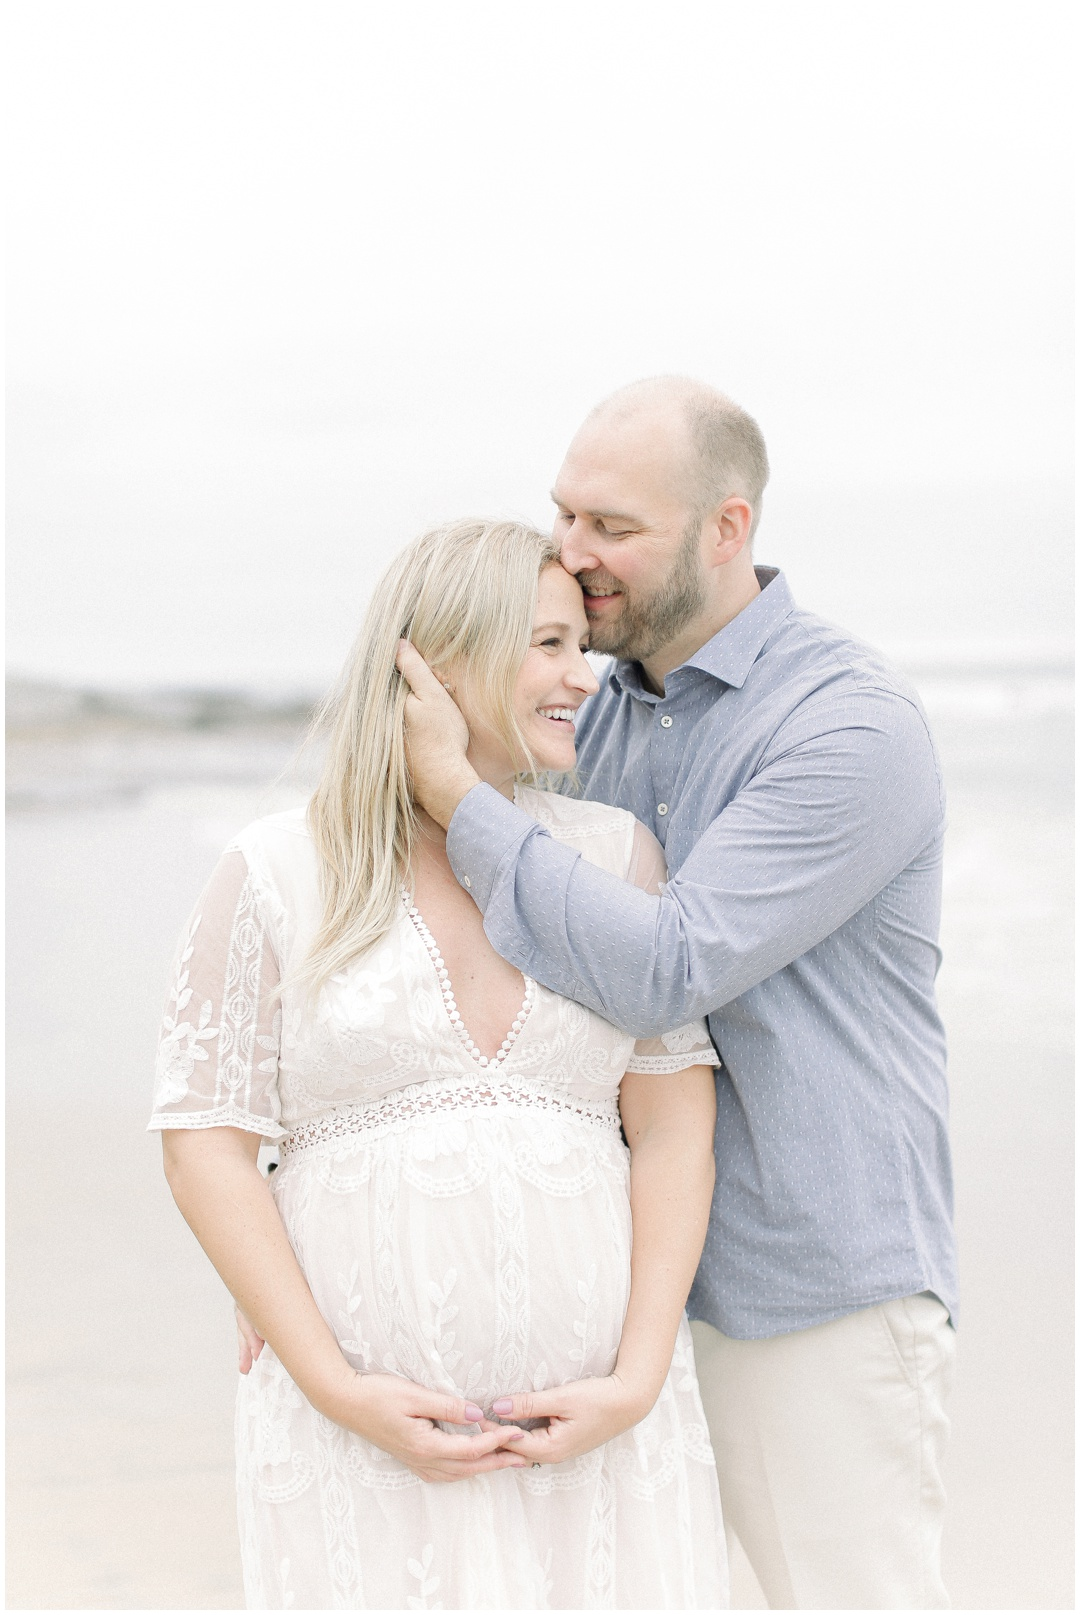 Newport_Beach_Newborn_Light_Airy_Natural_Photographer_Newport_Beach_Photographer_Orange_County_Family_Photographer_Cori_Kleckner_Photography_Newport_Beach_Photographer_Marisa_Podesto_Todd_Podesto__3964.jpg